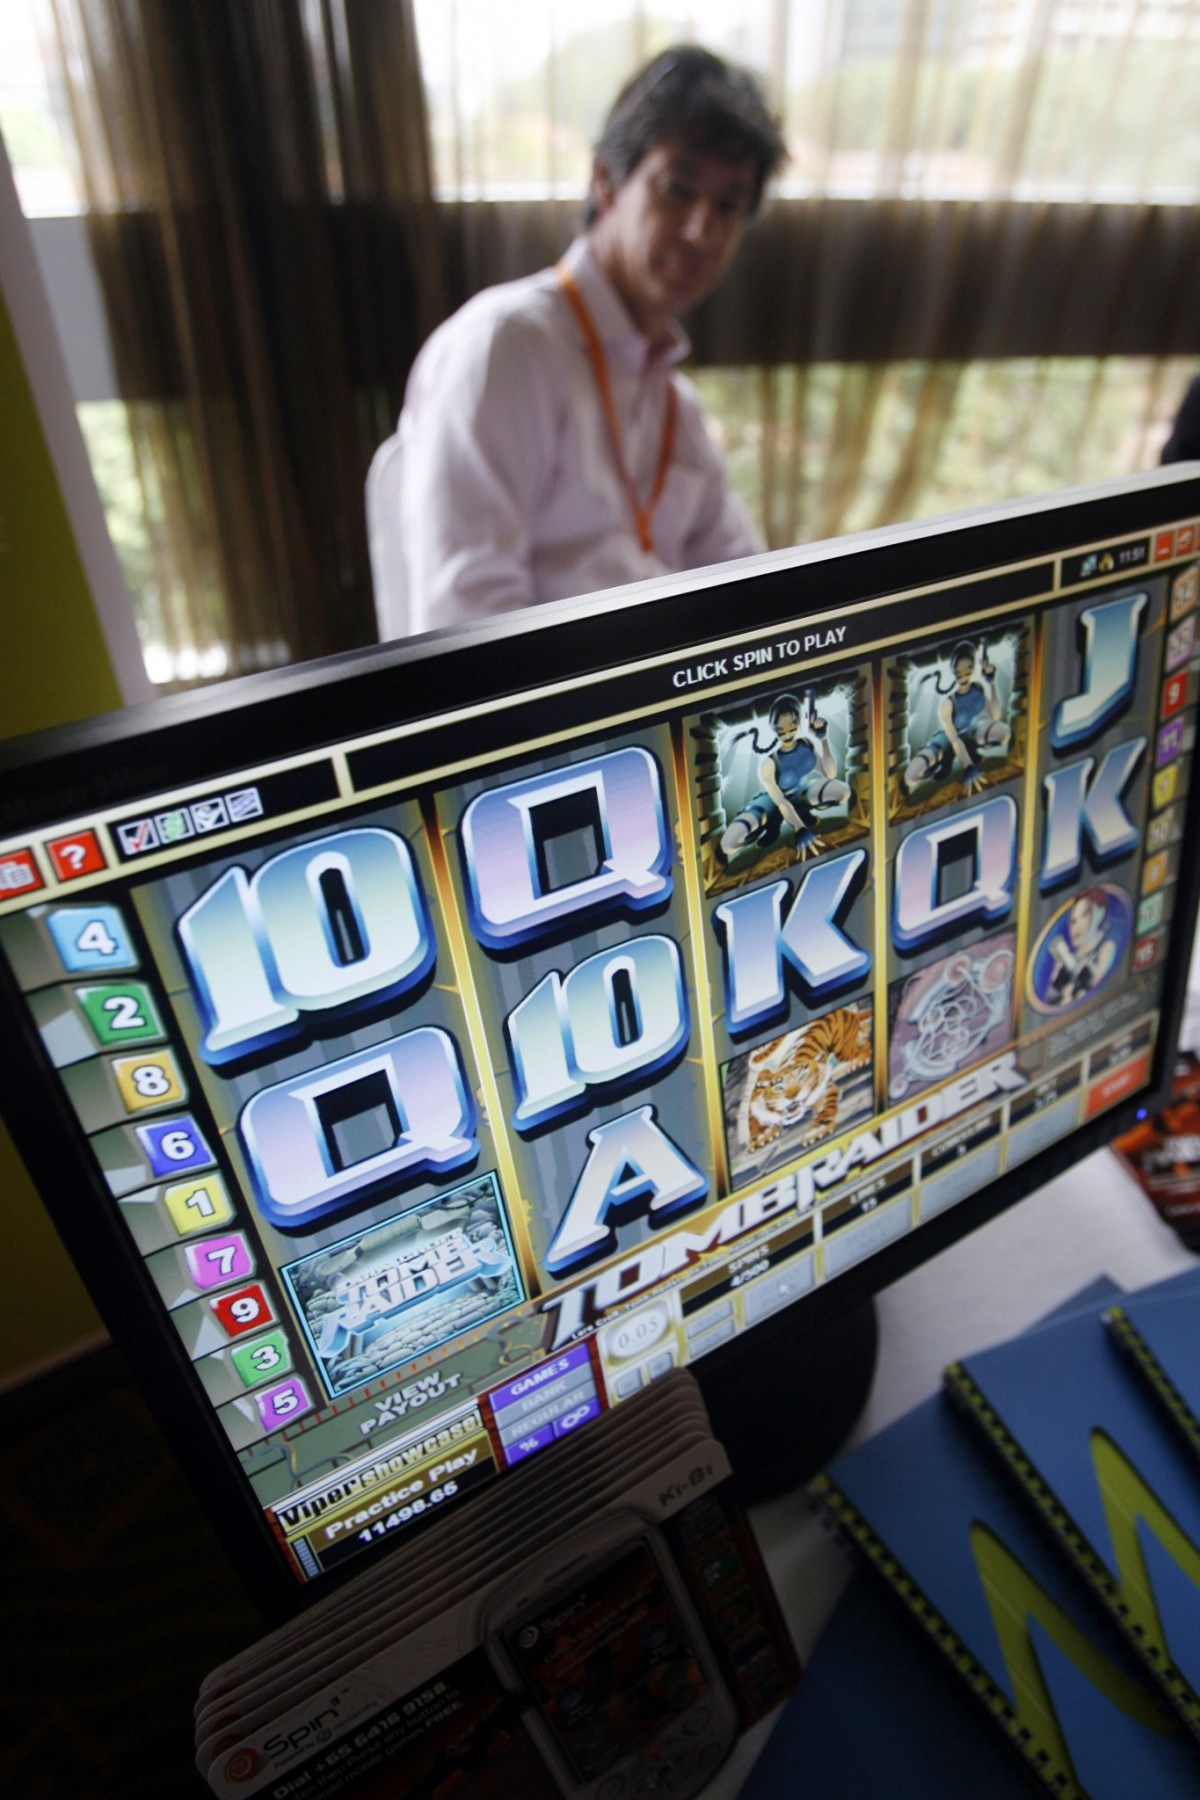 Gambling is illegal in China except in state-sanctioned lotteries. Photo: AFP